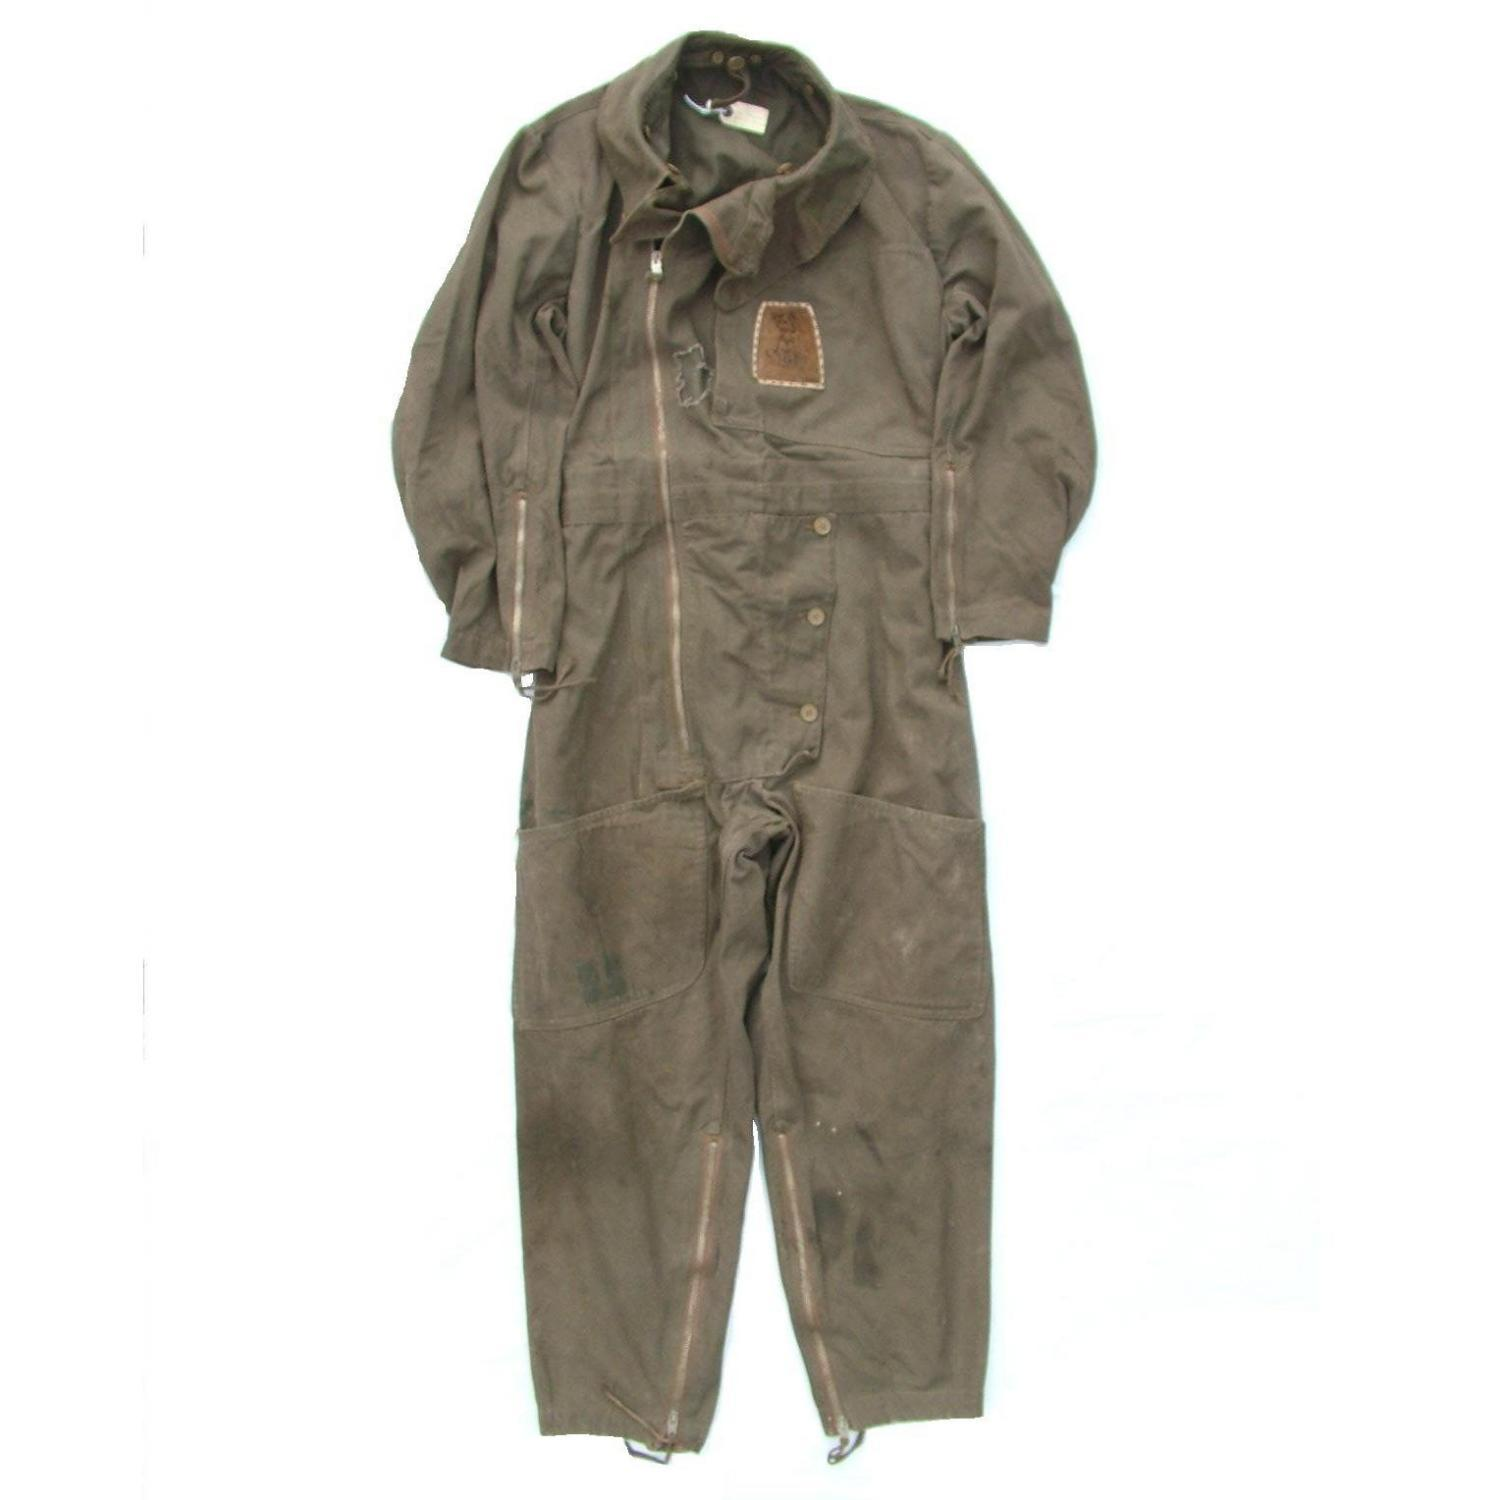 RAF 1940 Patt. Sidcot Flying Suit - History